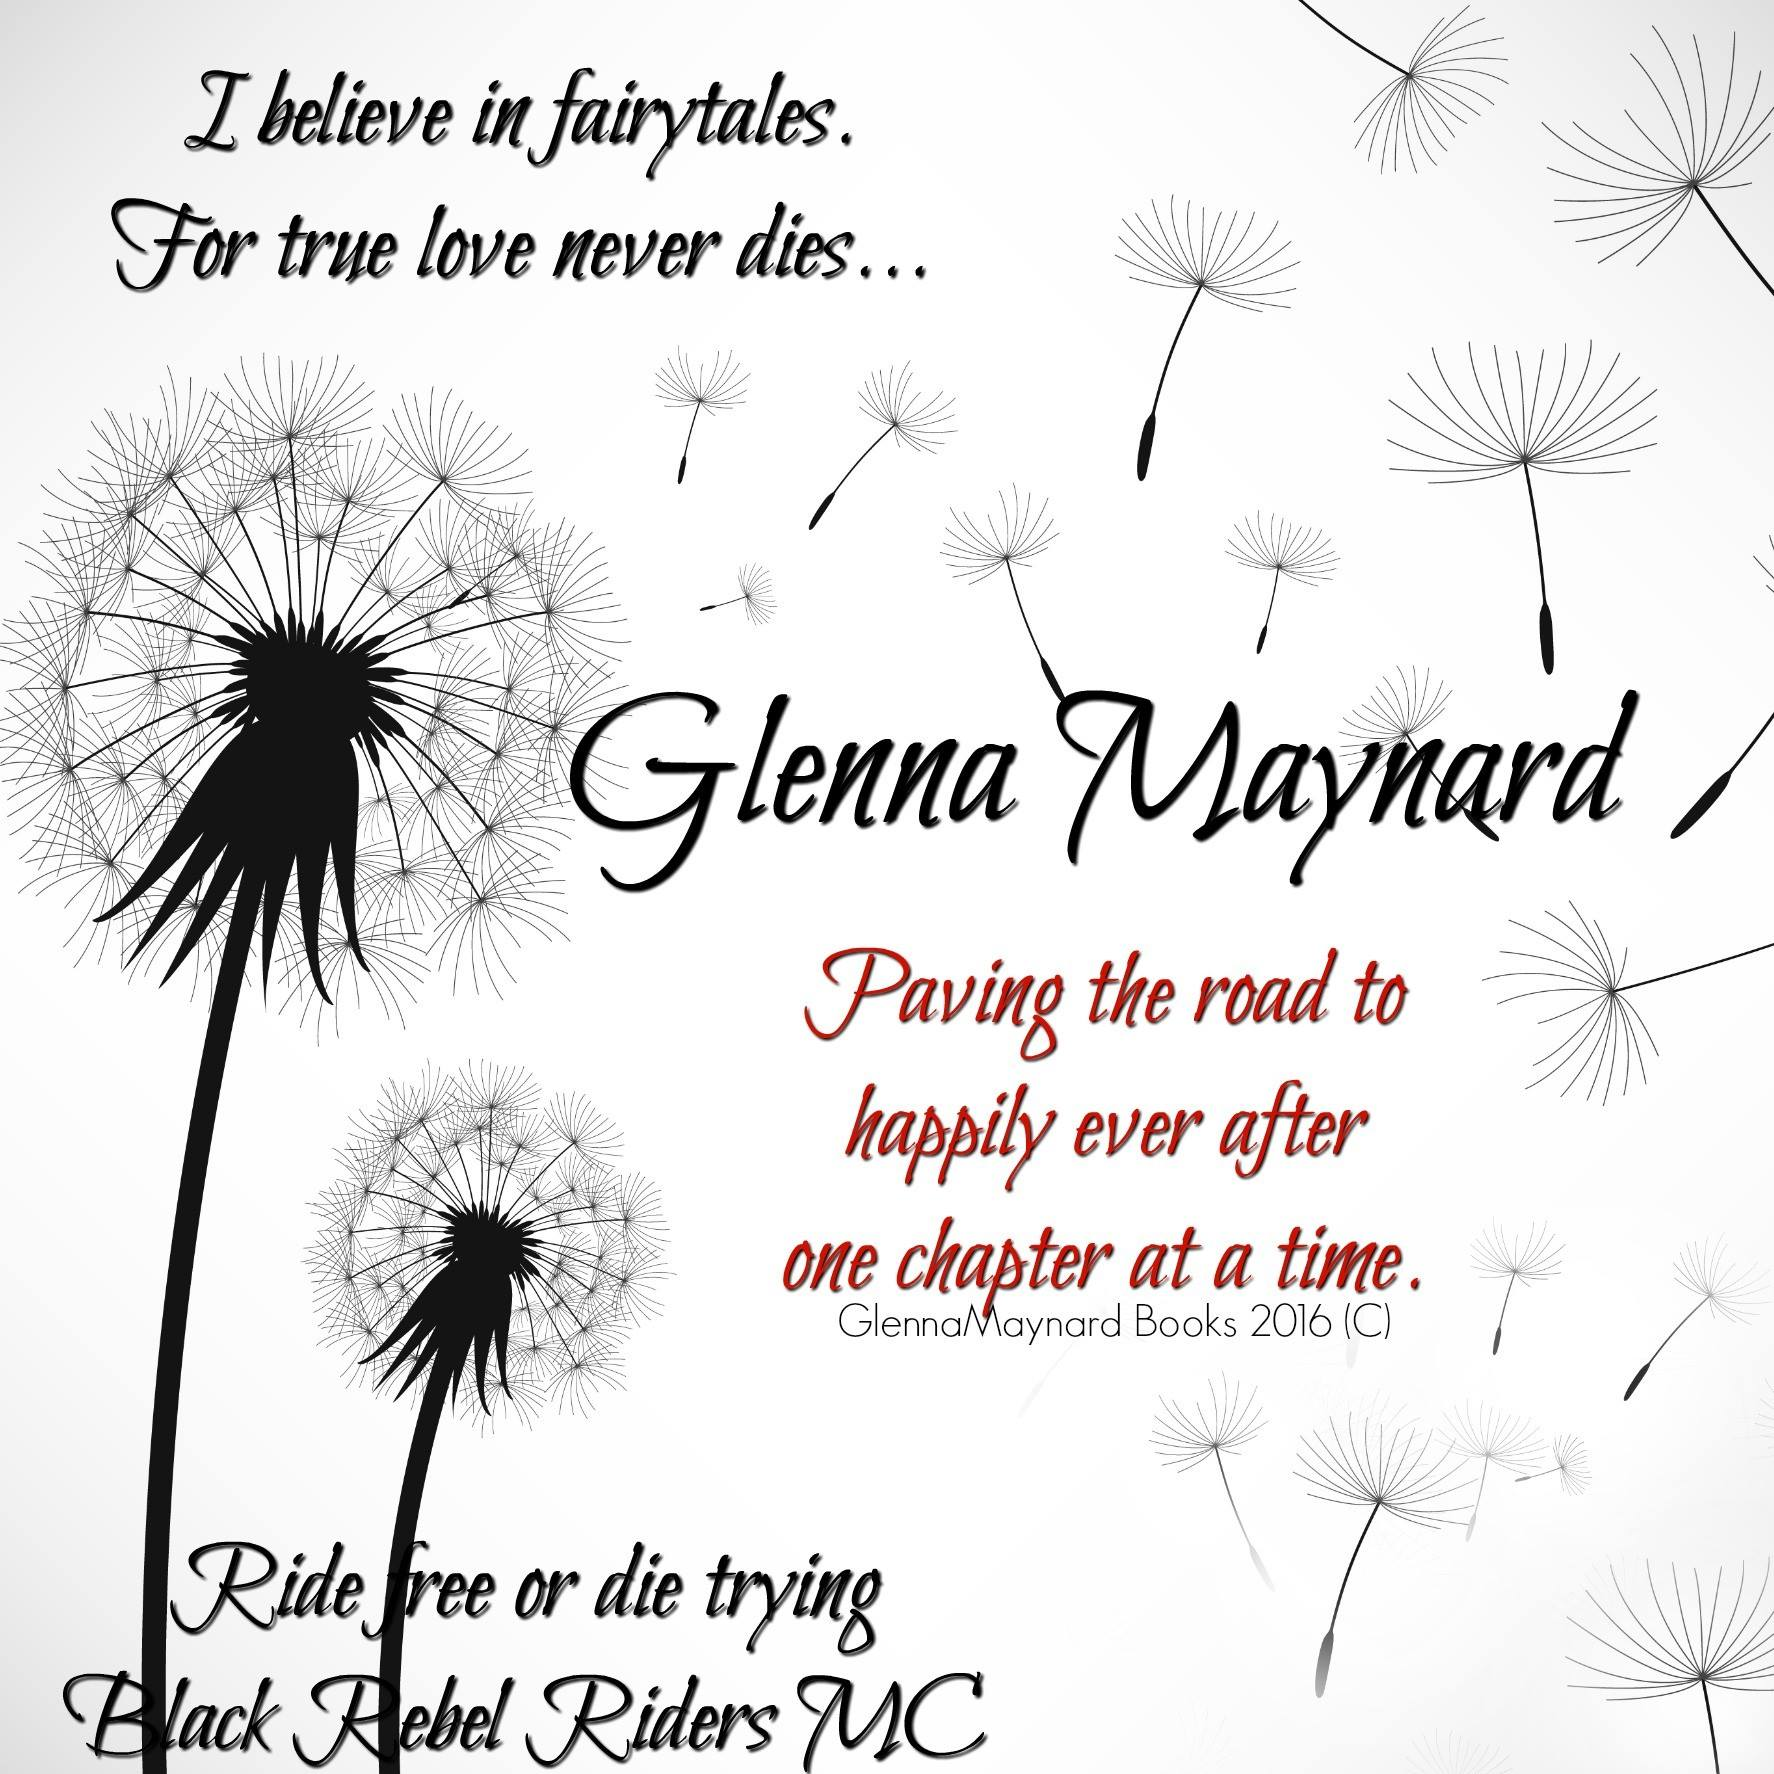 Glenna Maynard Is A Kentucky Native With A Passion For Romance, Best Known  For Her Bestselling Romantic Suspense Novel I'm With You And The Black  Rebel